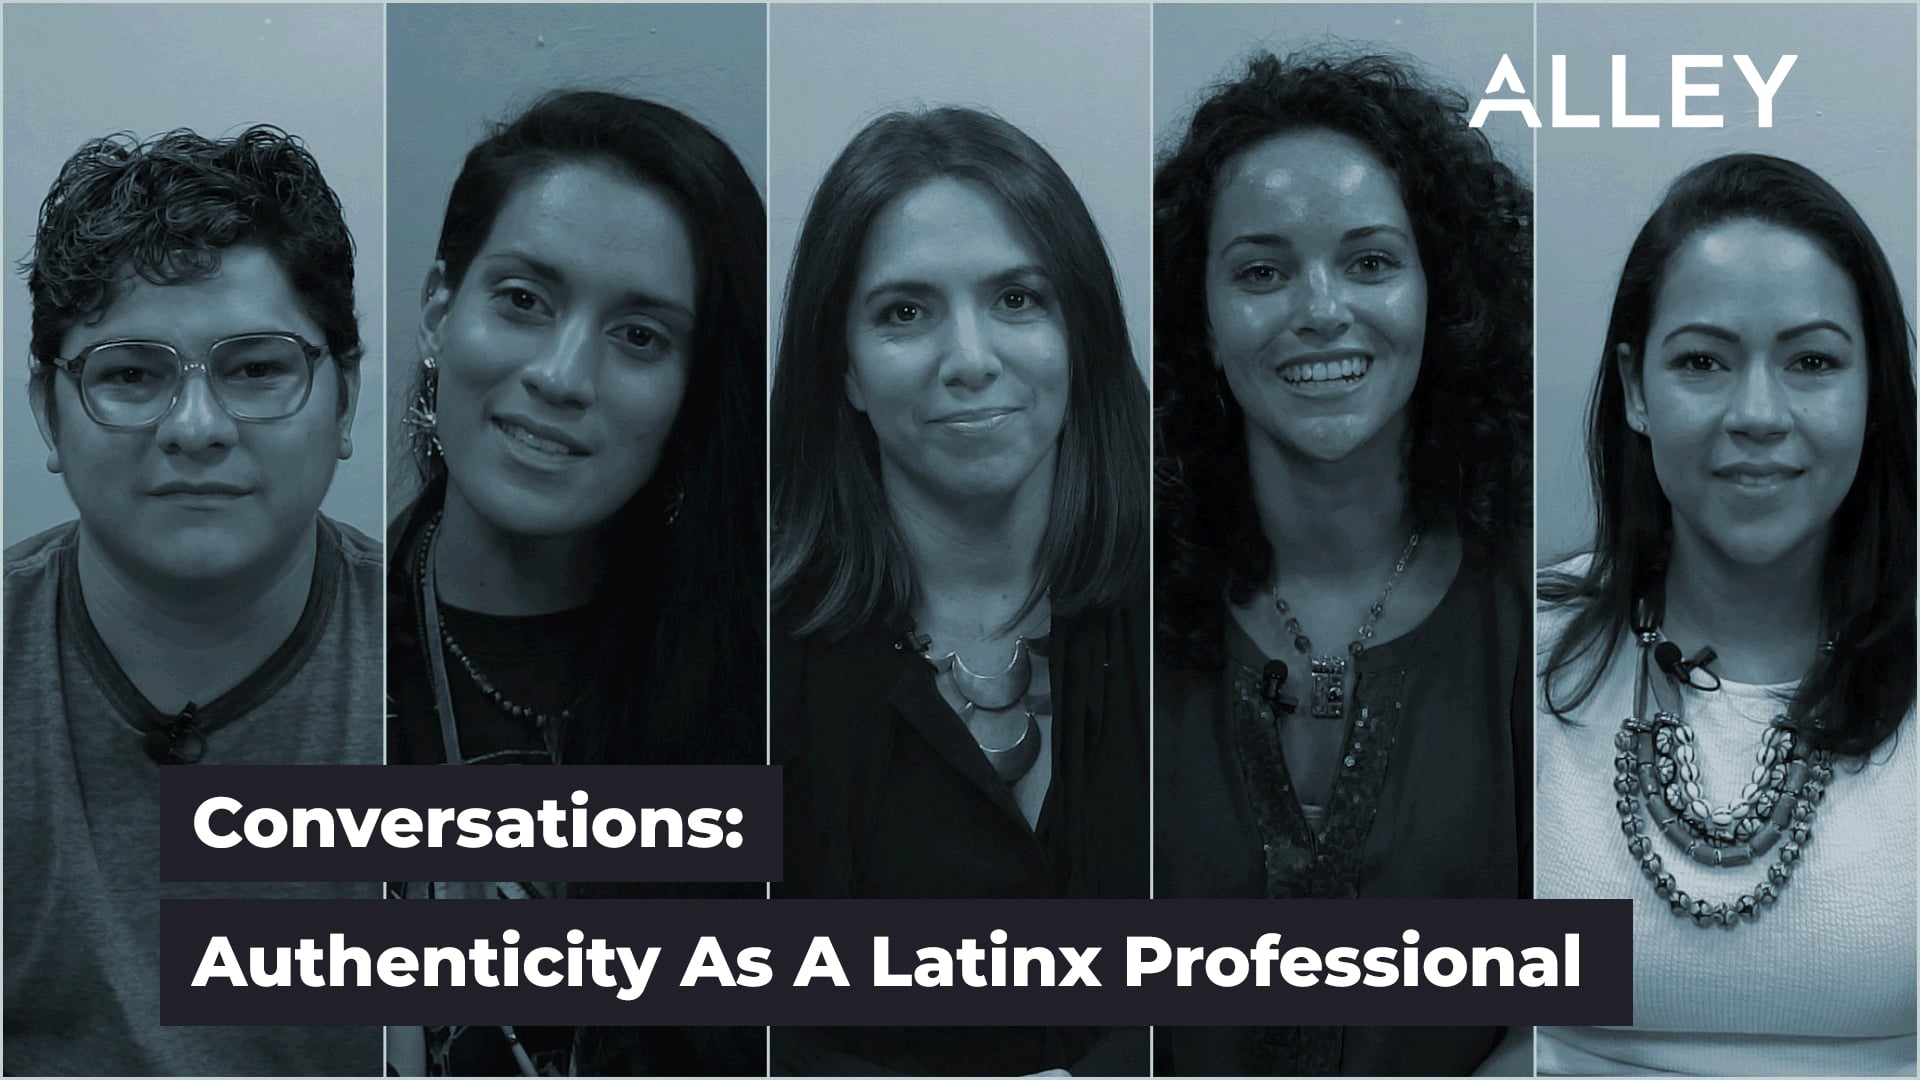 Alley Conversations: Authenticity In TheWorkplace As A Latinx Professional